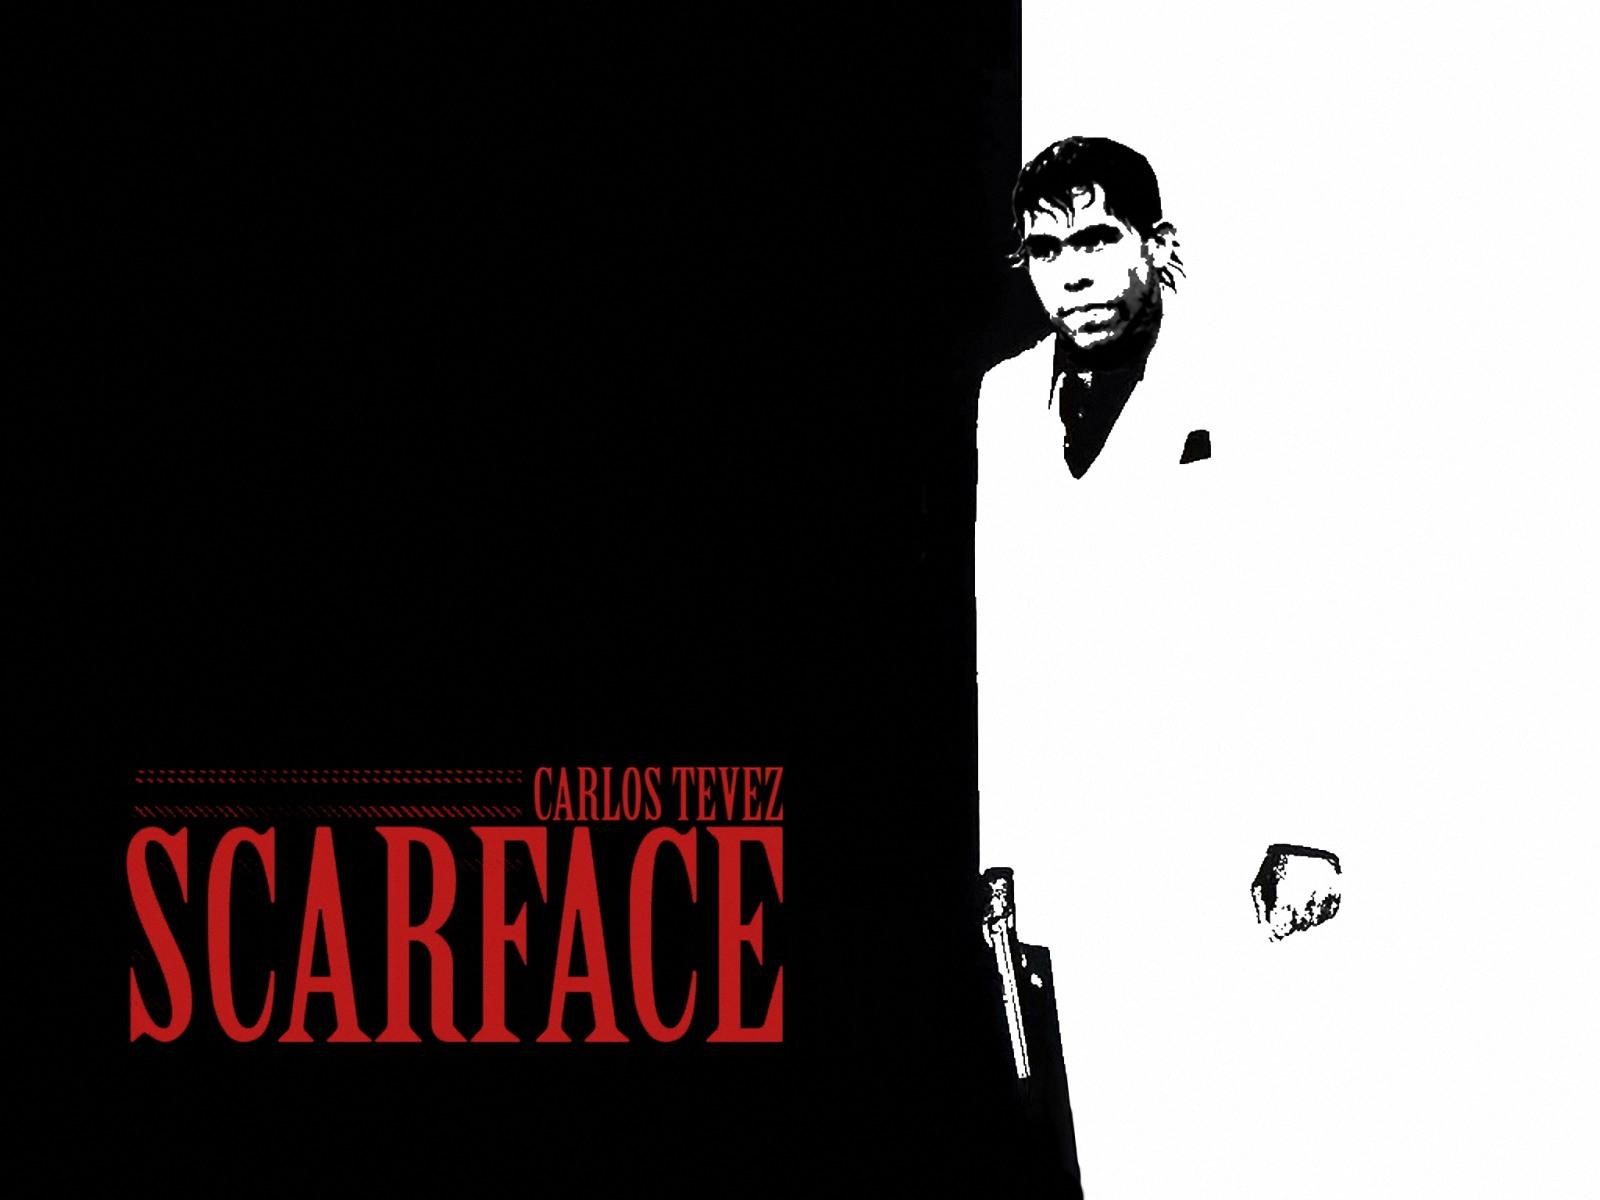 Scarface WallpapersScarface Wallpapers Pictures Download 1600x1200